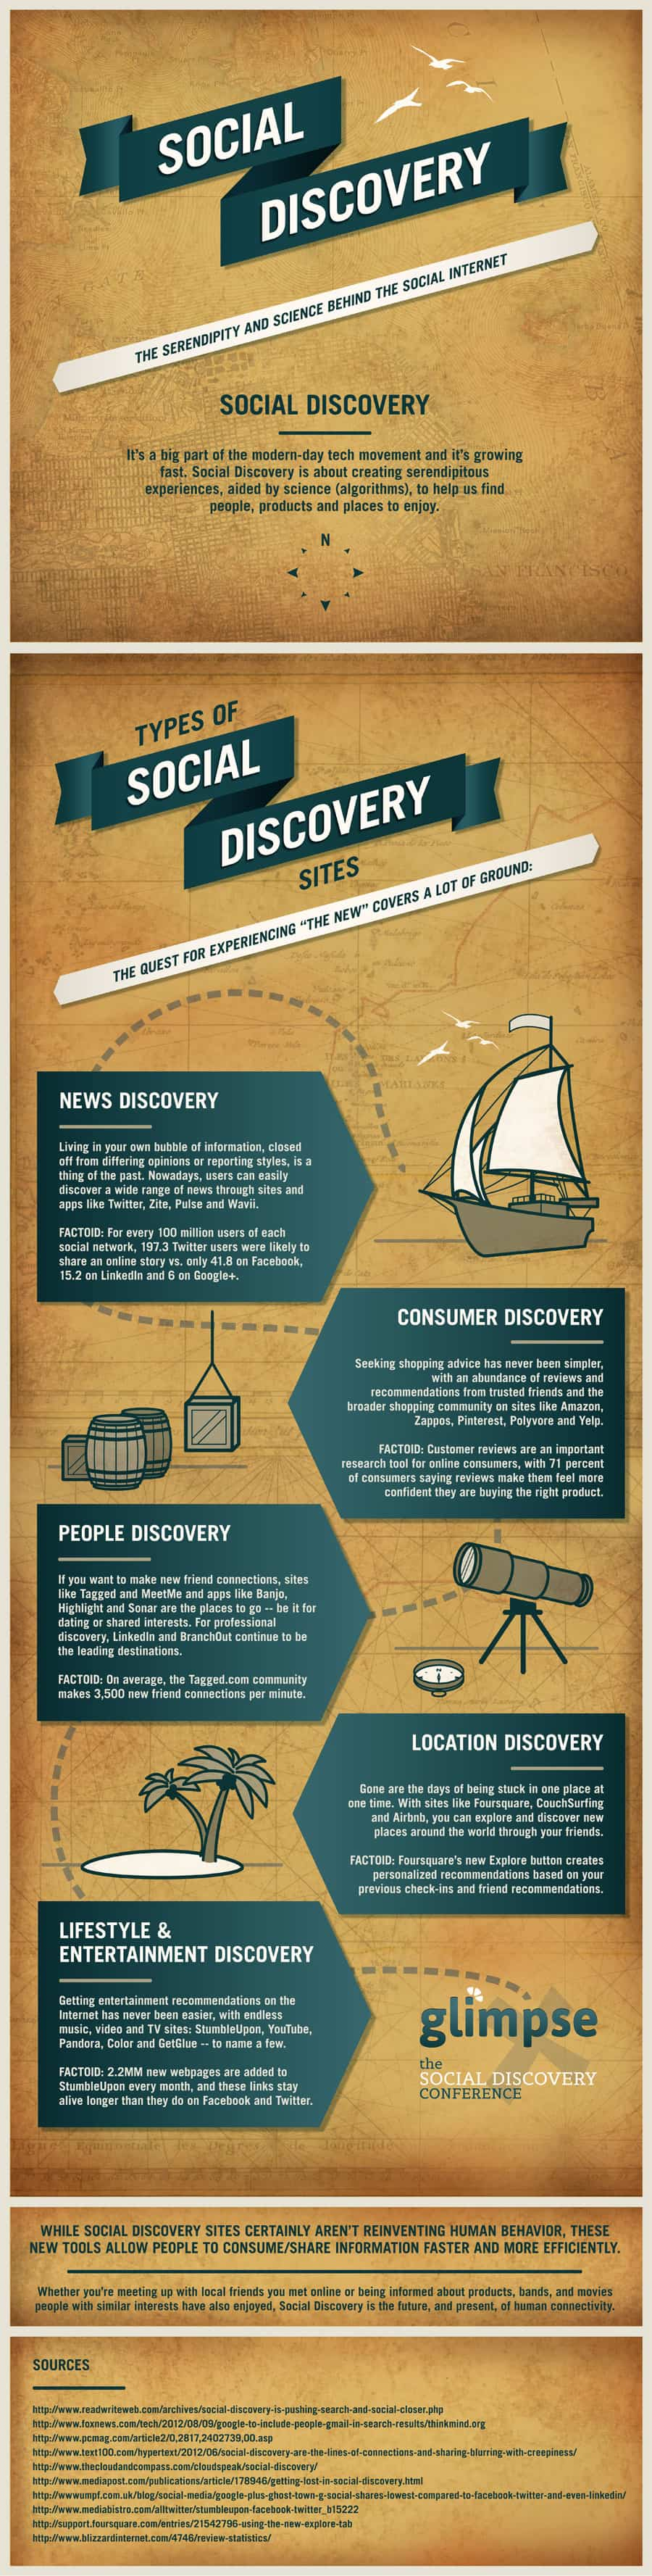 SOCIAL DISCOVERY